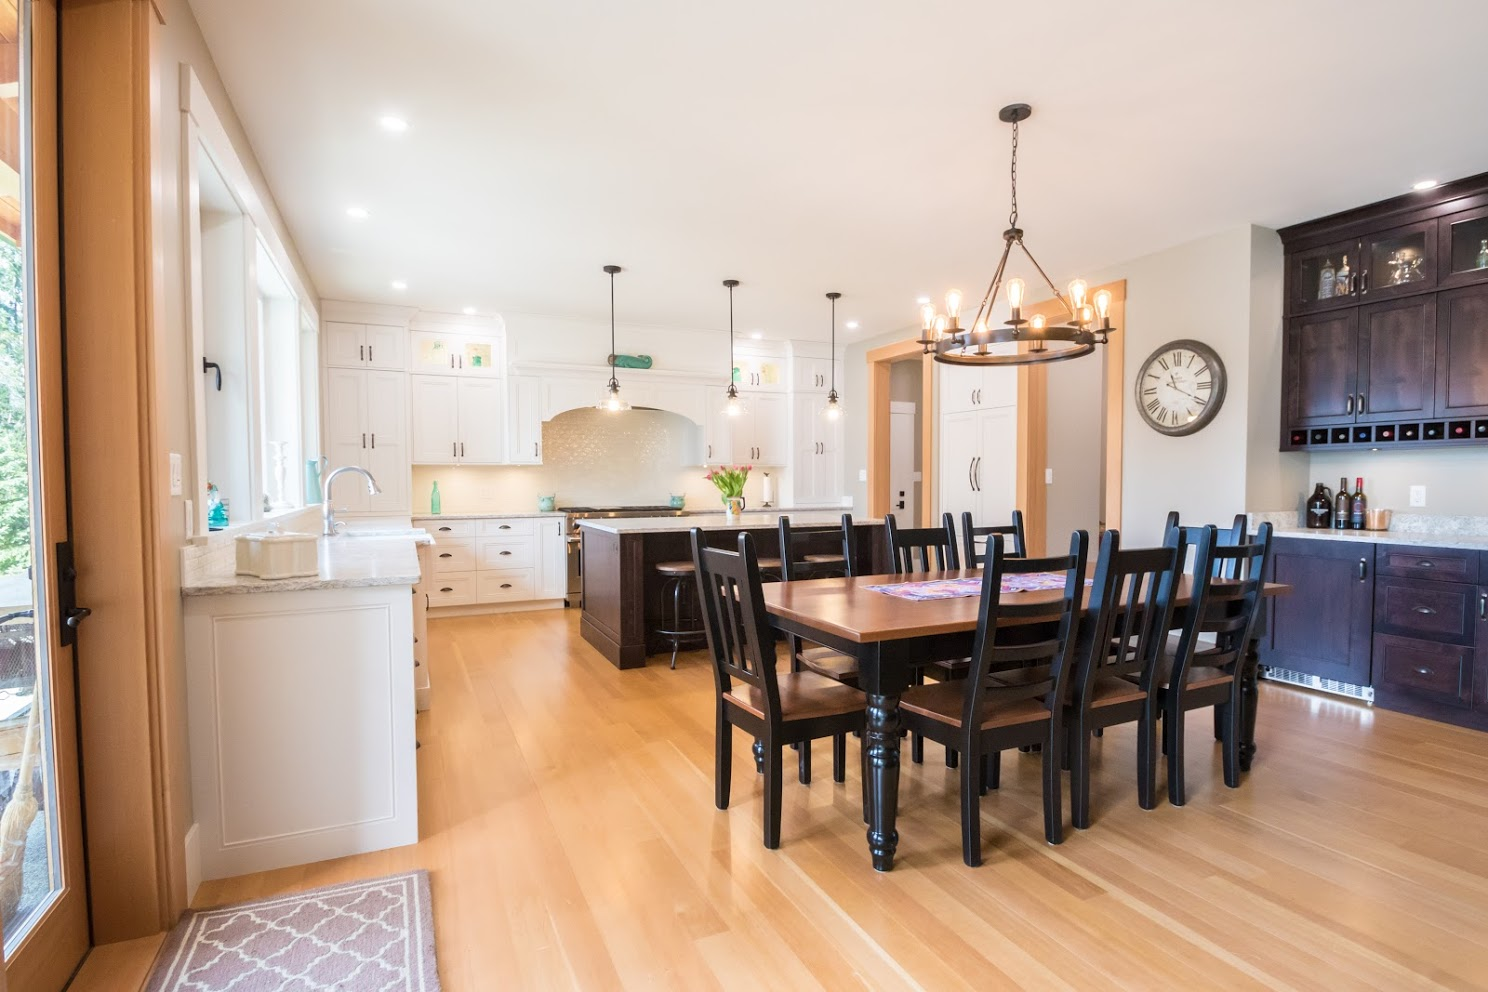 Teresa McKinnon - (Client)Project Date: November 2018, Project Price: $50,000 - $100,000After much planning I was so excited to finally see my kitchen come to life. I had studied all the provided 3d drawings from Coleen Walters so I knew exactly what I was getting. I met with Coleen many times and she was patient with all my ideas. Down to earth, respectful of my budget and providing cost options along the way. All the way across the board Cowichan Woodwork was top notch to deal with from Gordon to the installers - I can't say enough about their product and their conduct on the job site.